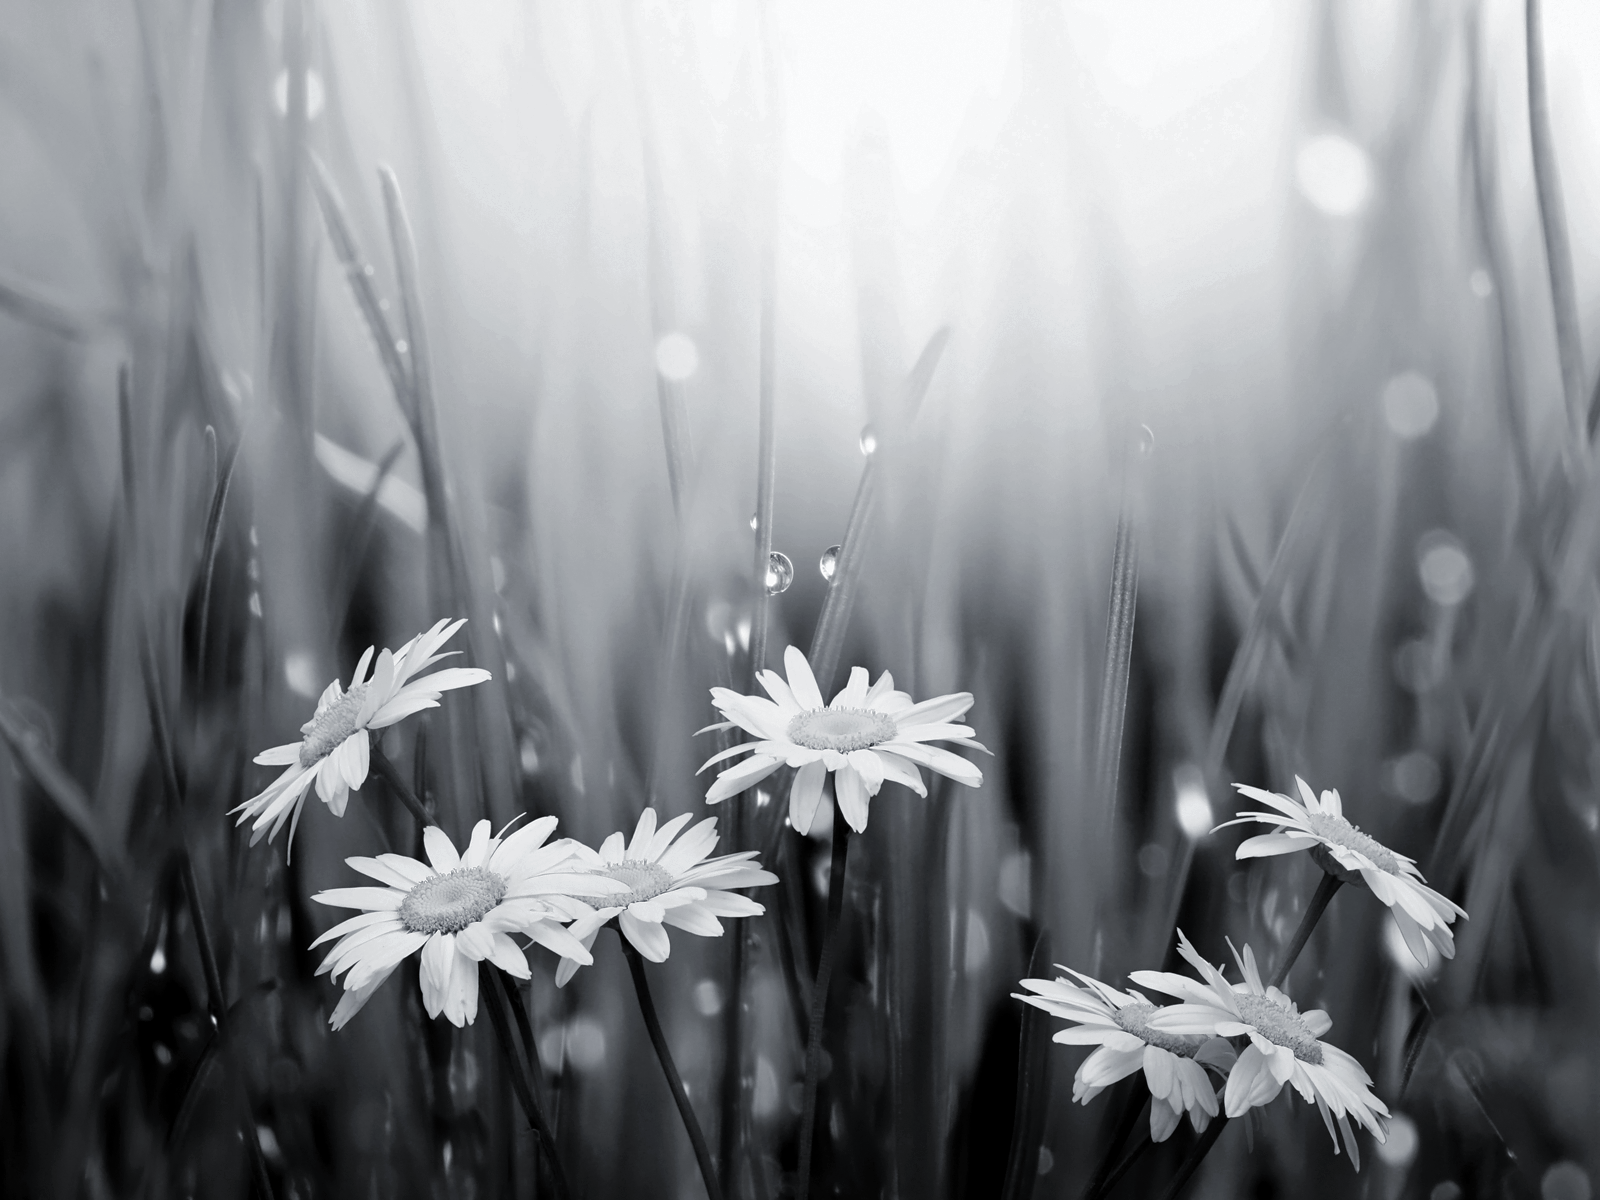 black and white daisies and raindrops wallpaper happy 300th to david hume - Black And White Flowers